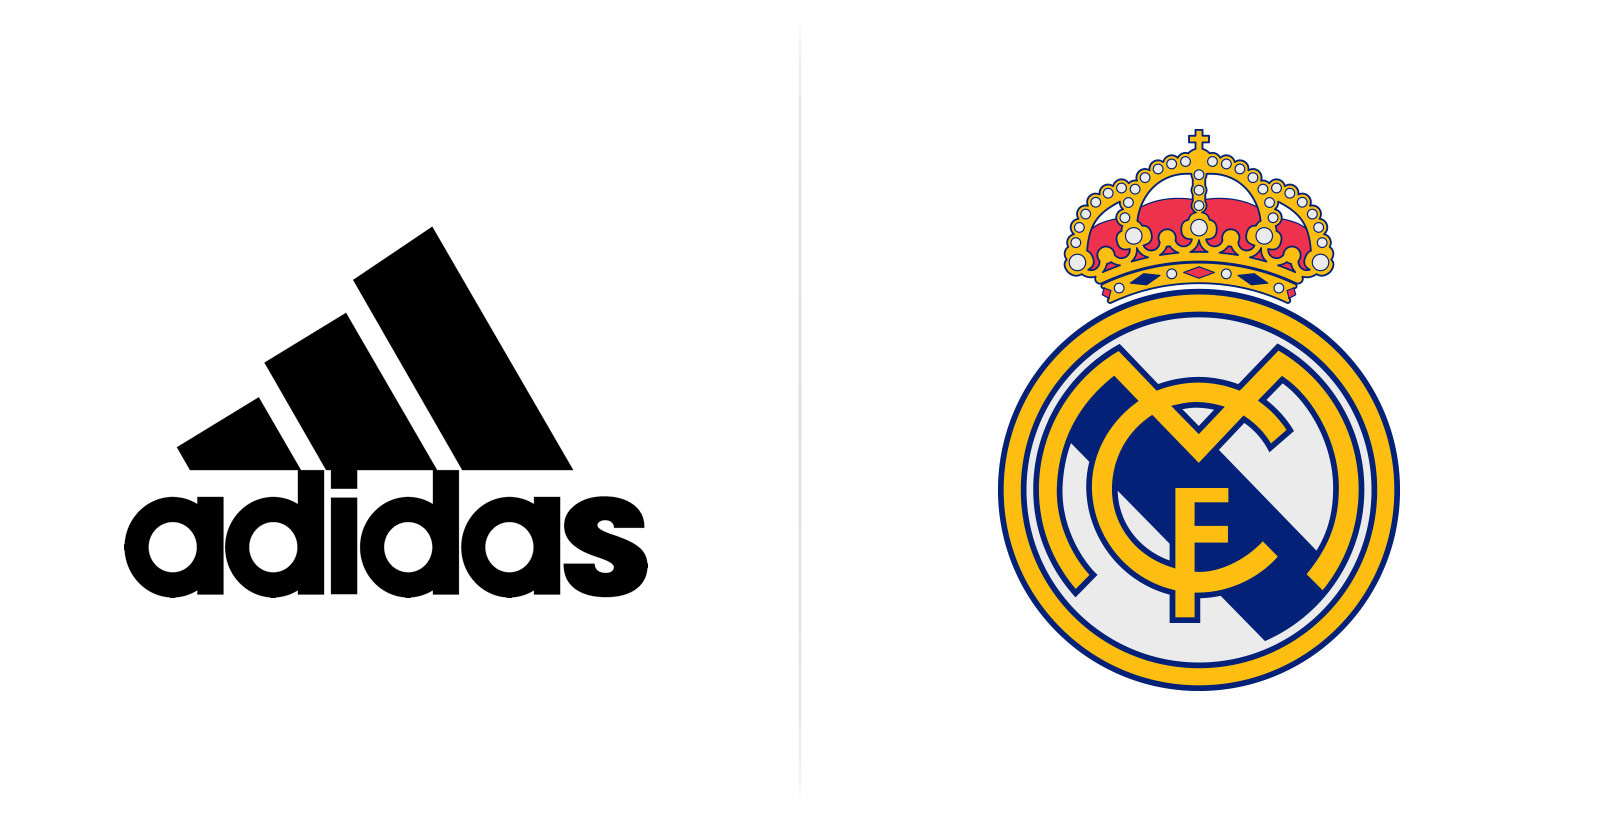 new styles 09c5d 84f5d Image via adidas   Real Madrid